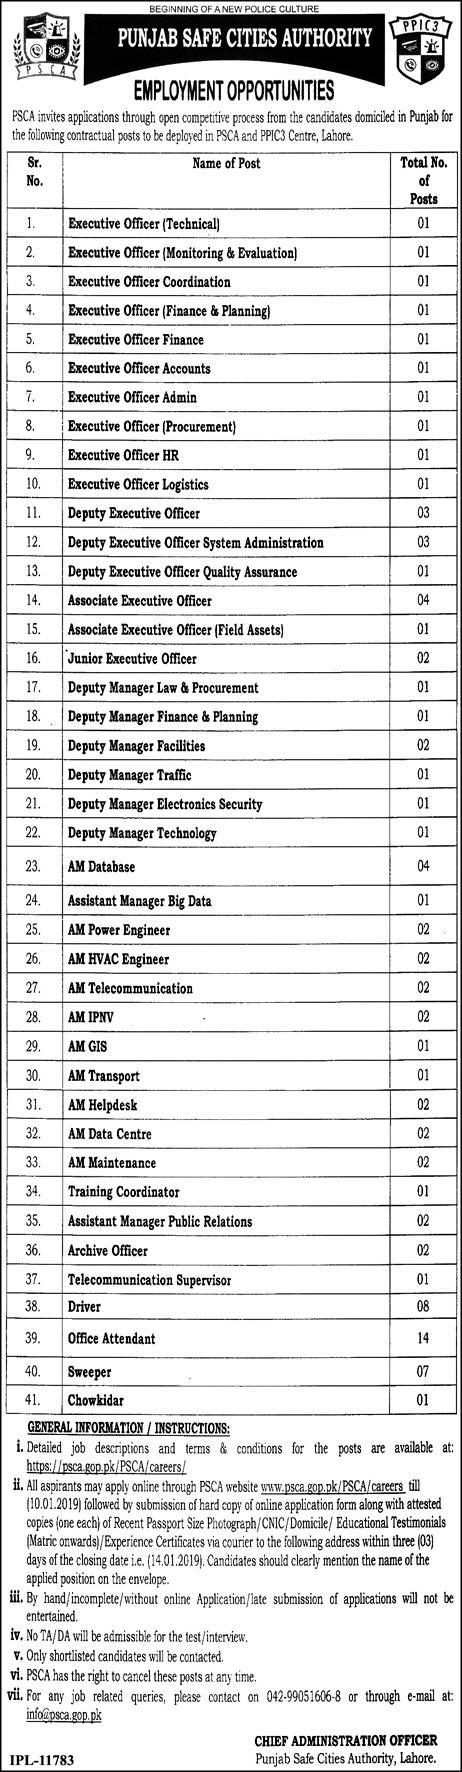 Punjab Safe Cities Authority PSCA Jobs 2019 Application Form